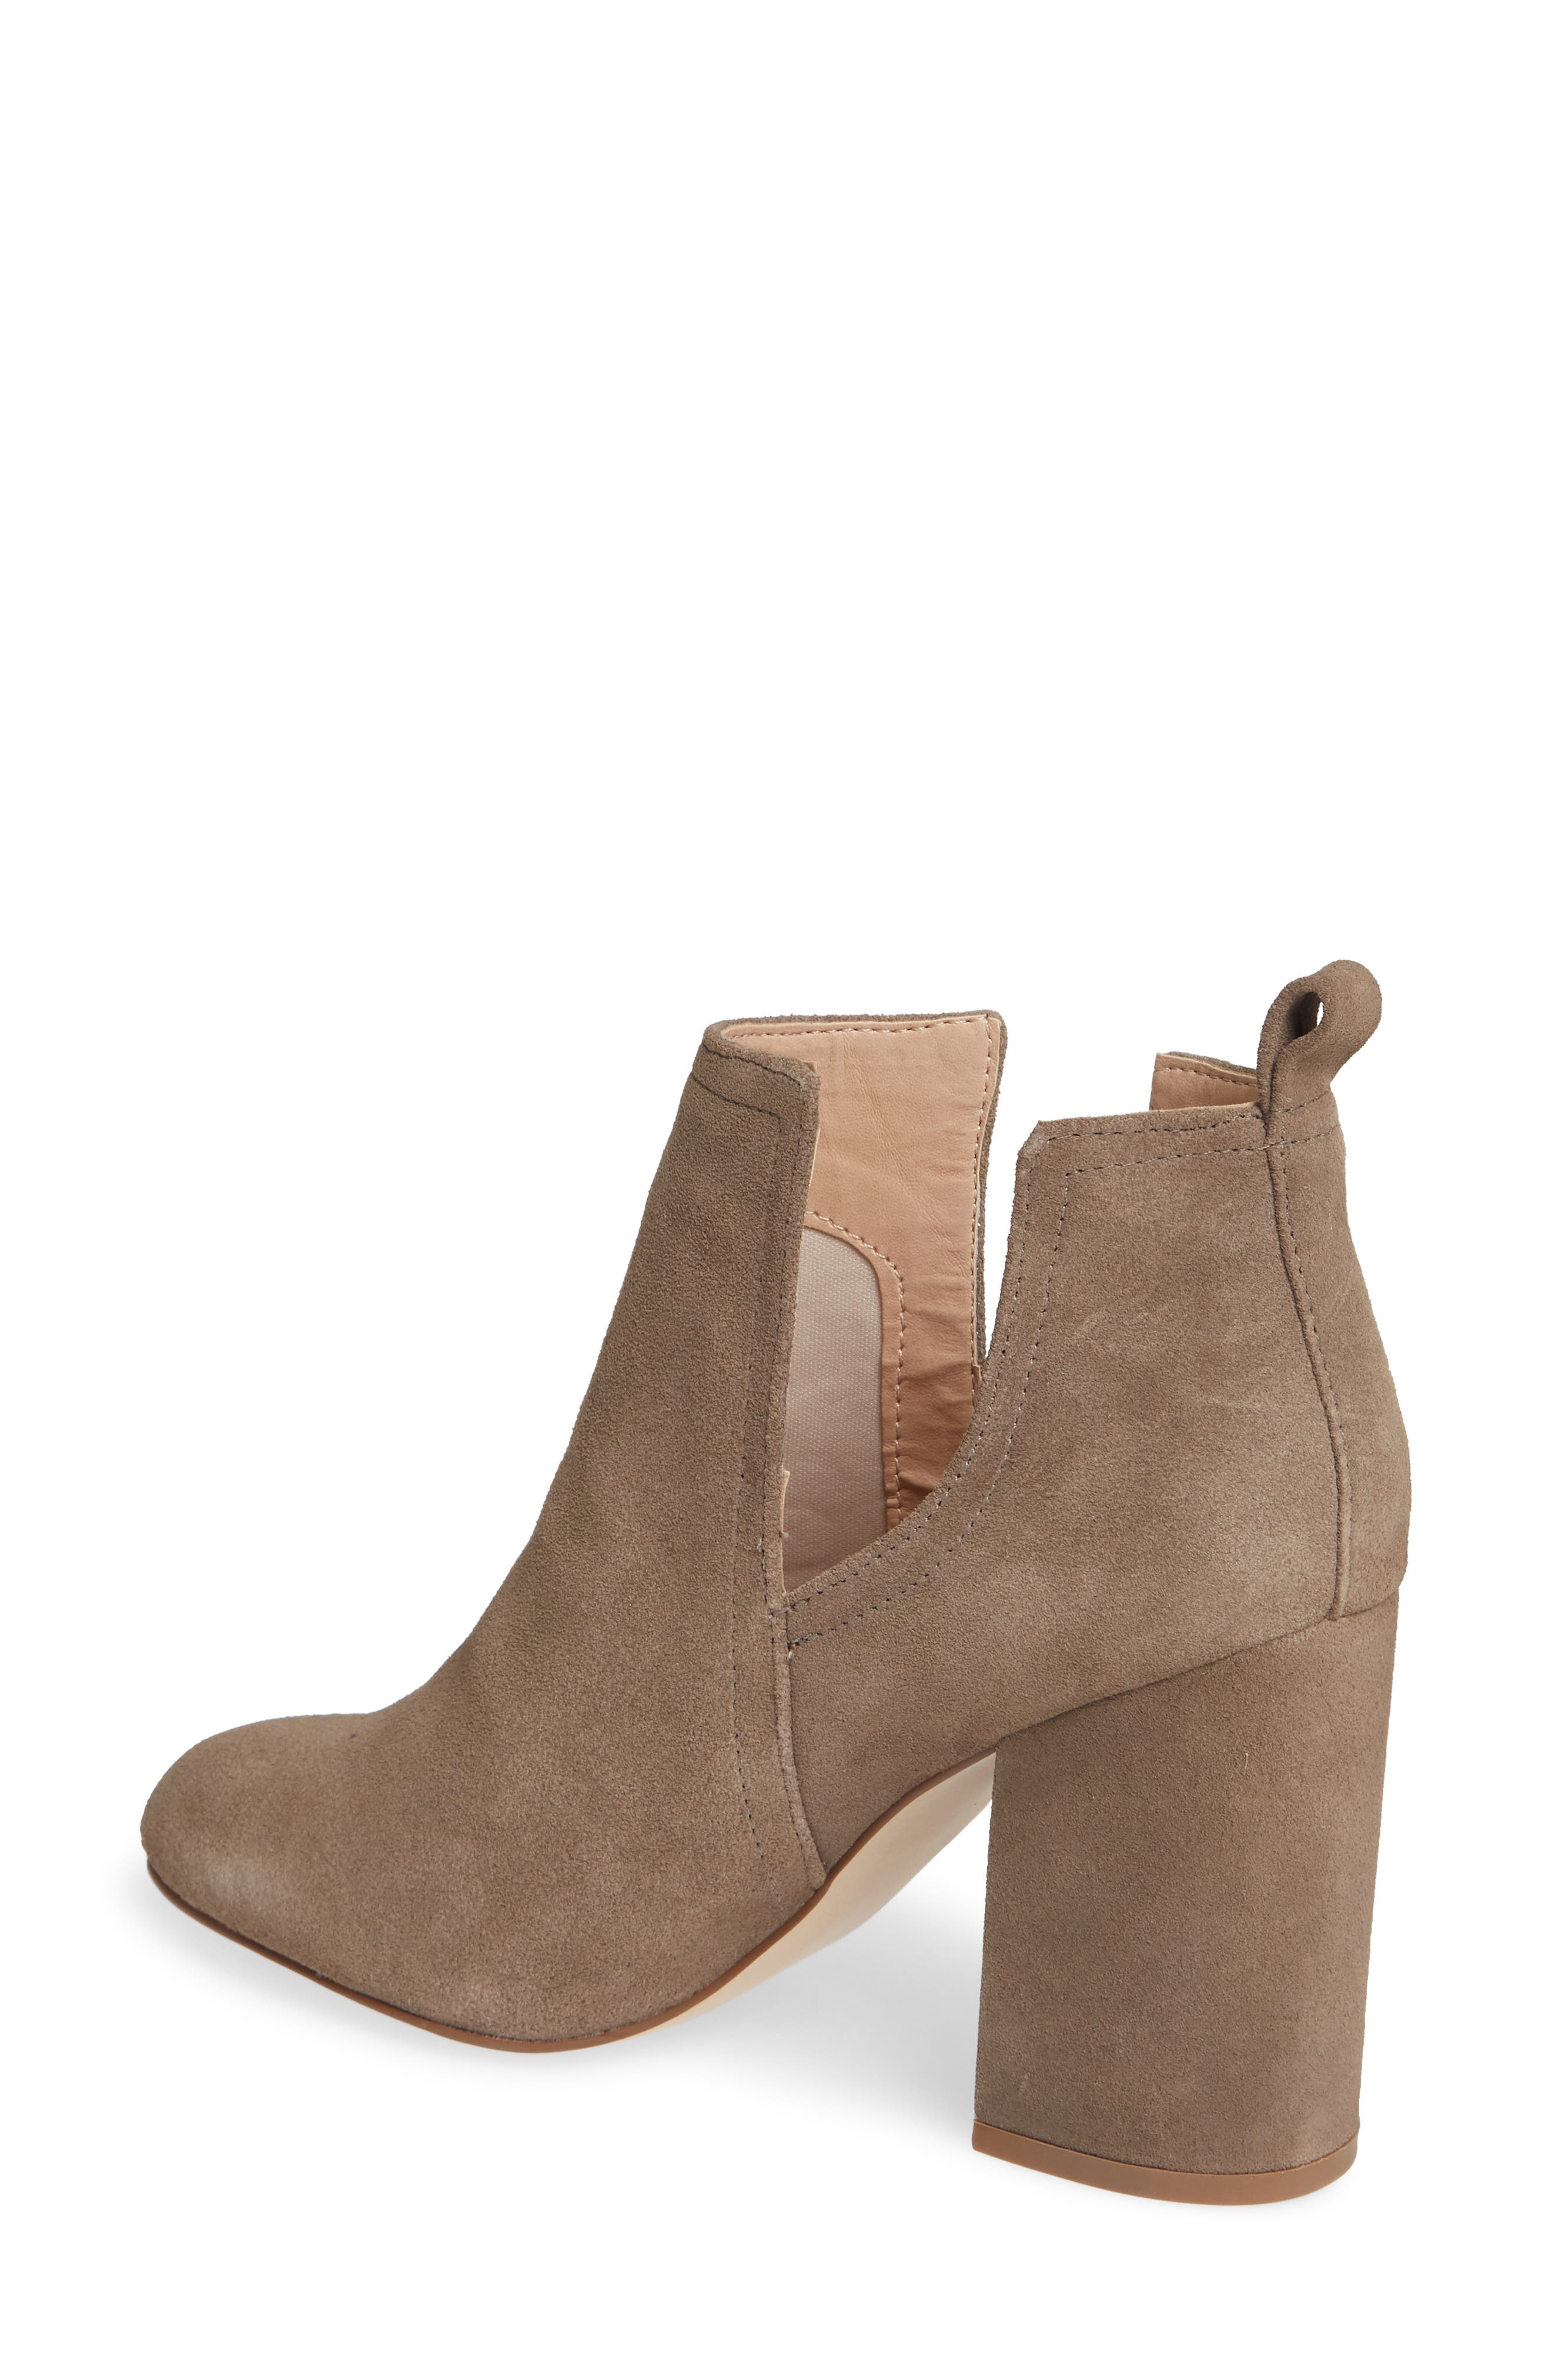 Nayna Bootie,                             Alternate thumbnail 2, color,                             DARK TAUPE